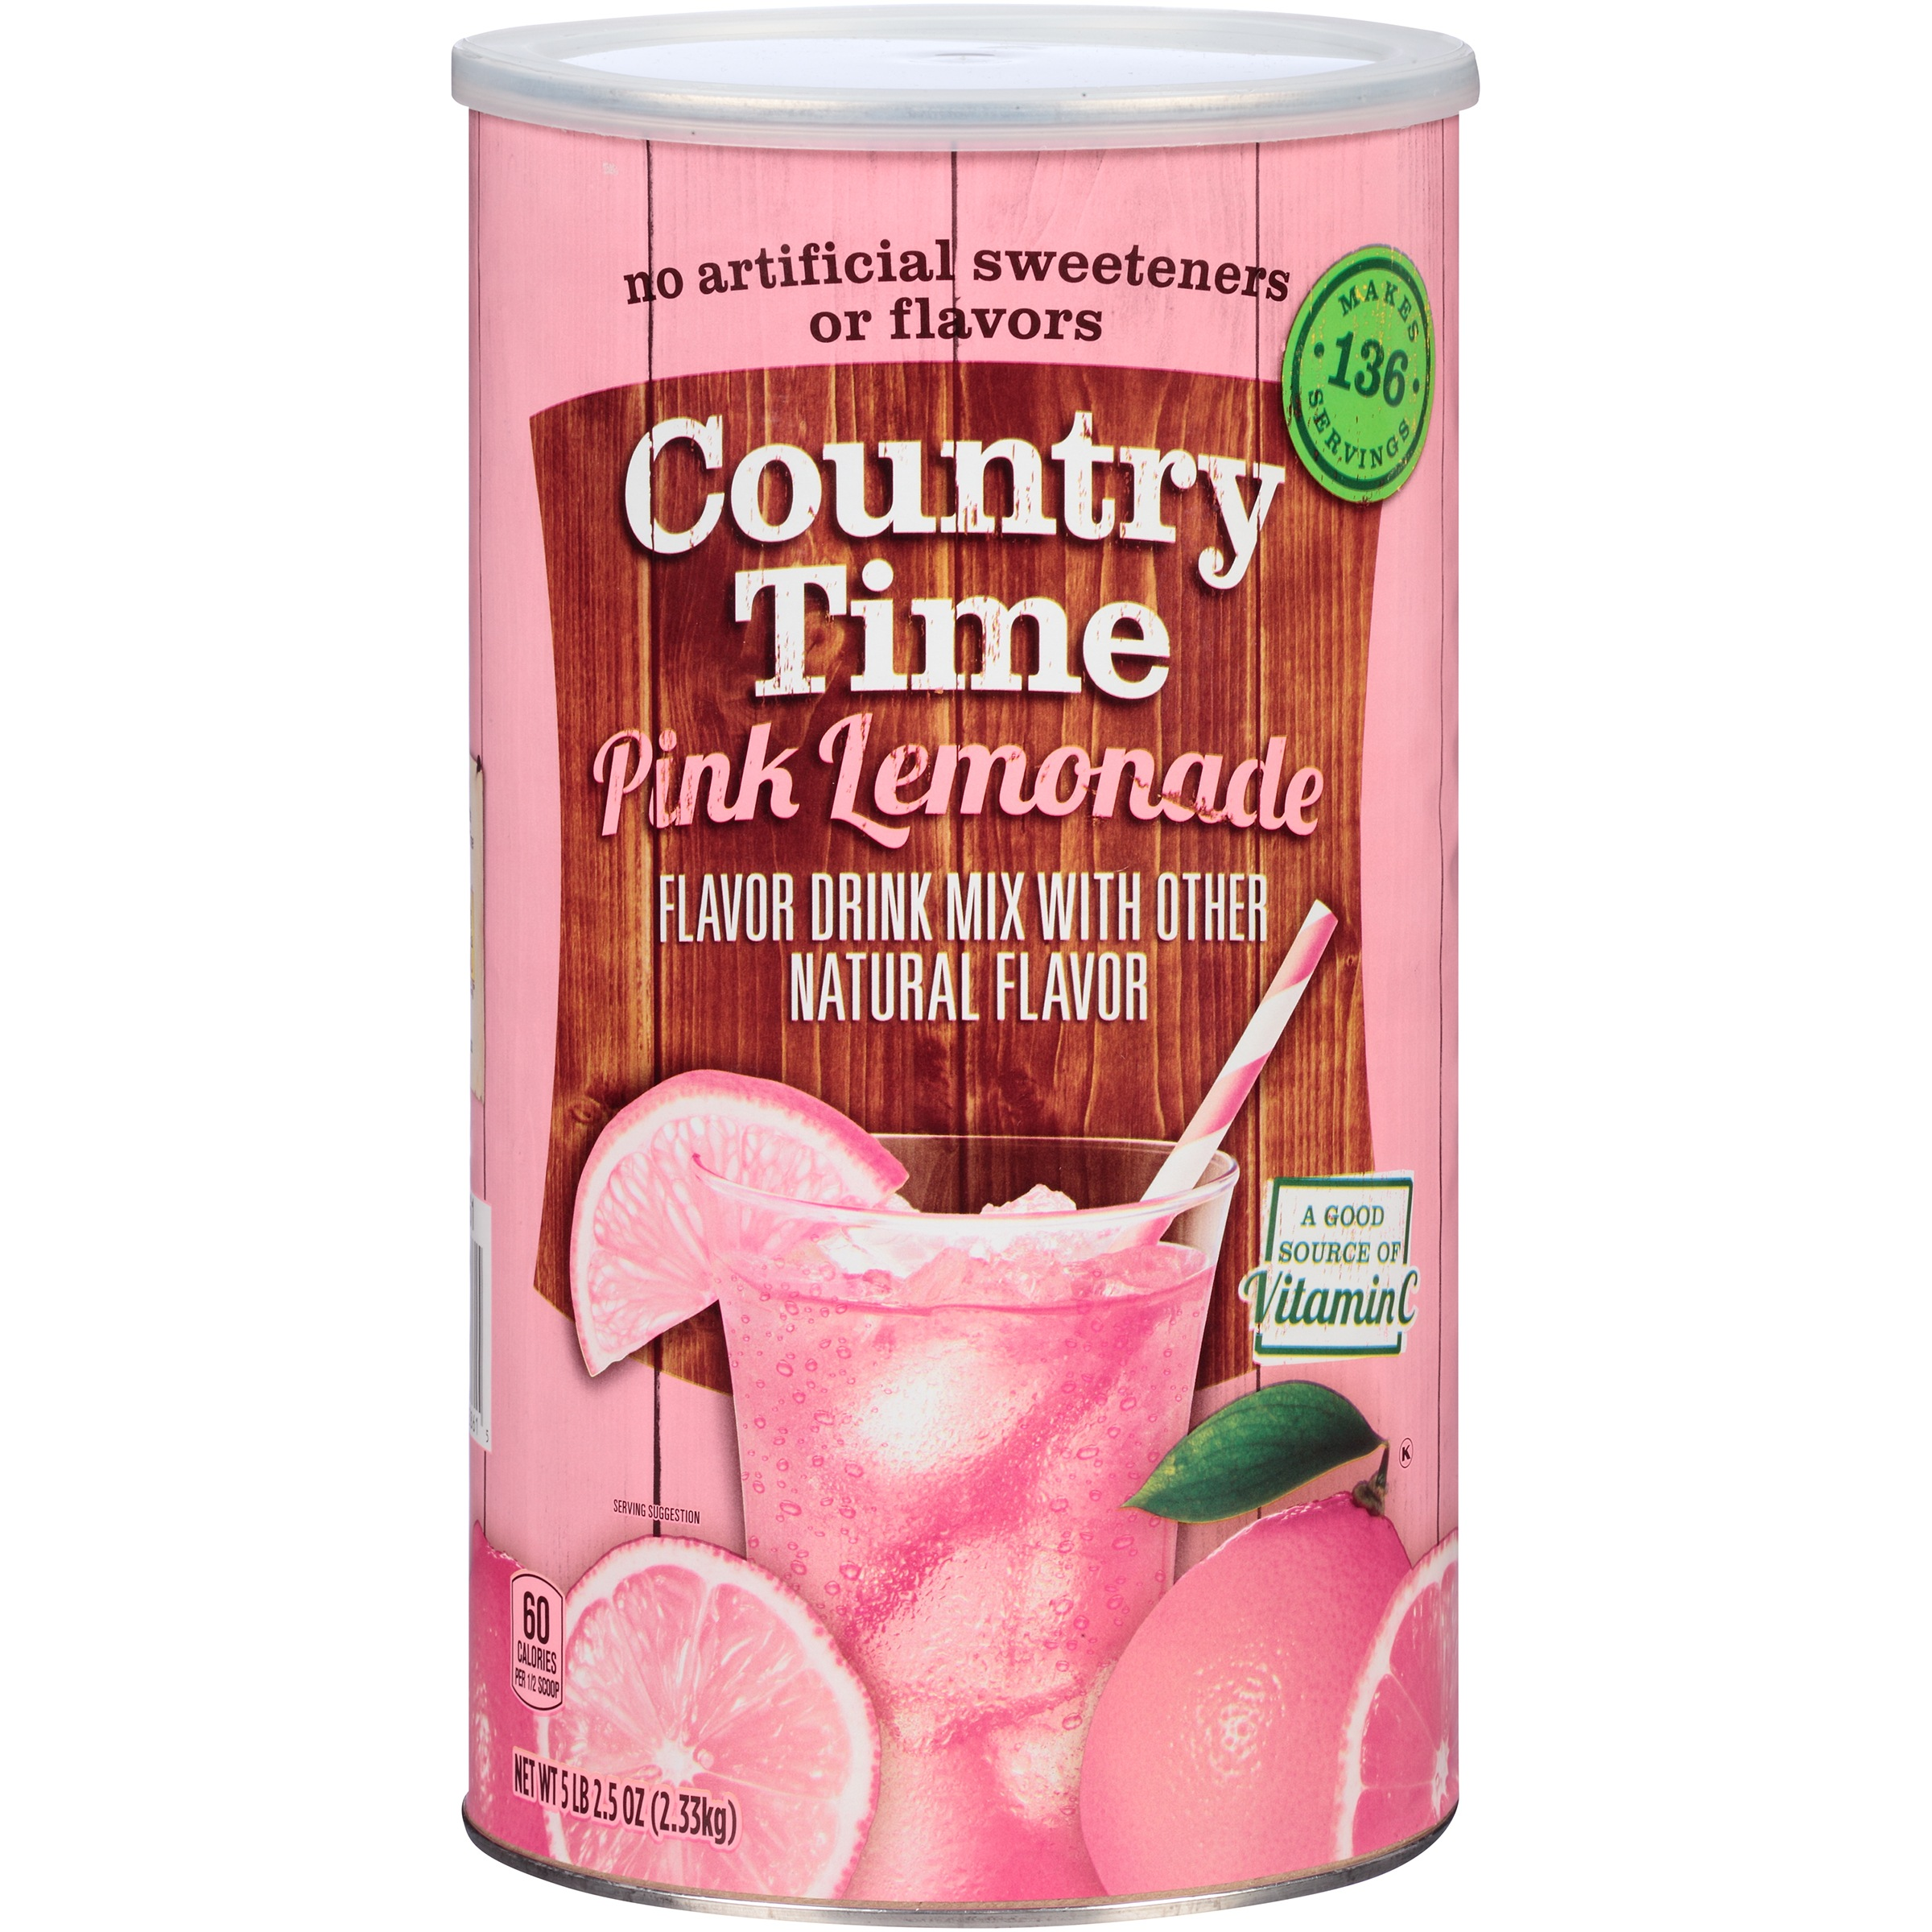 Country Time Pink Lemonade Drink Mix 82.5 oz. Canister